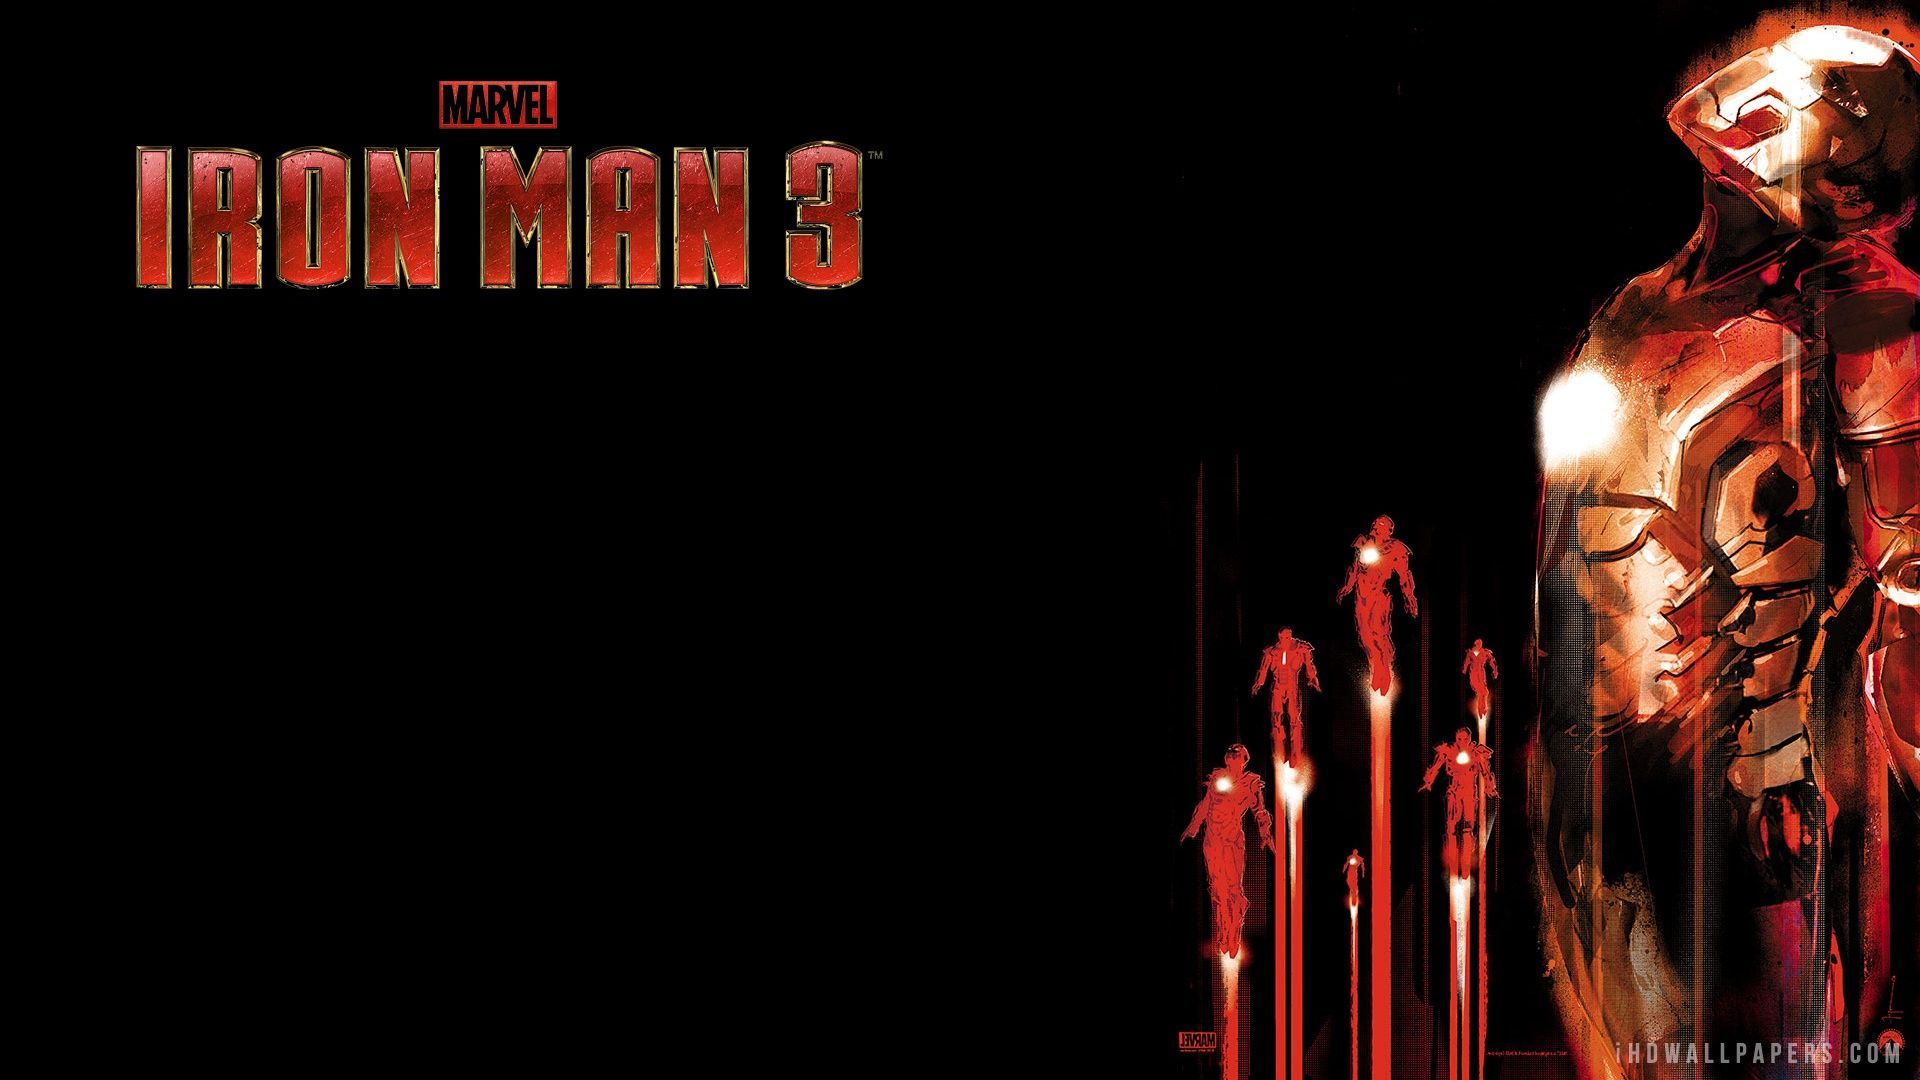 Iron Man 3 Imax 3d Hd 1080p Wallpapers Ironman